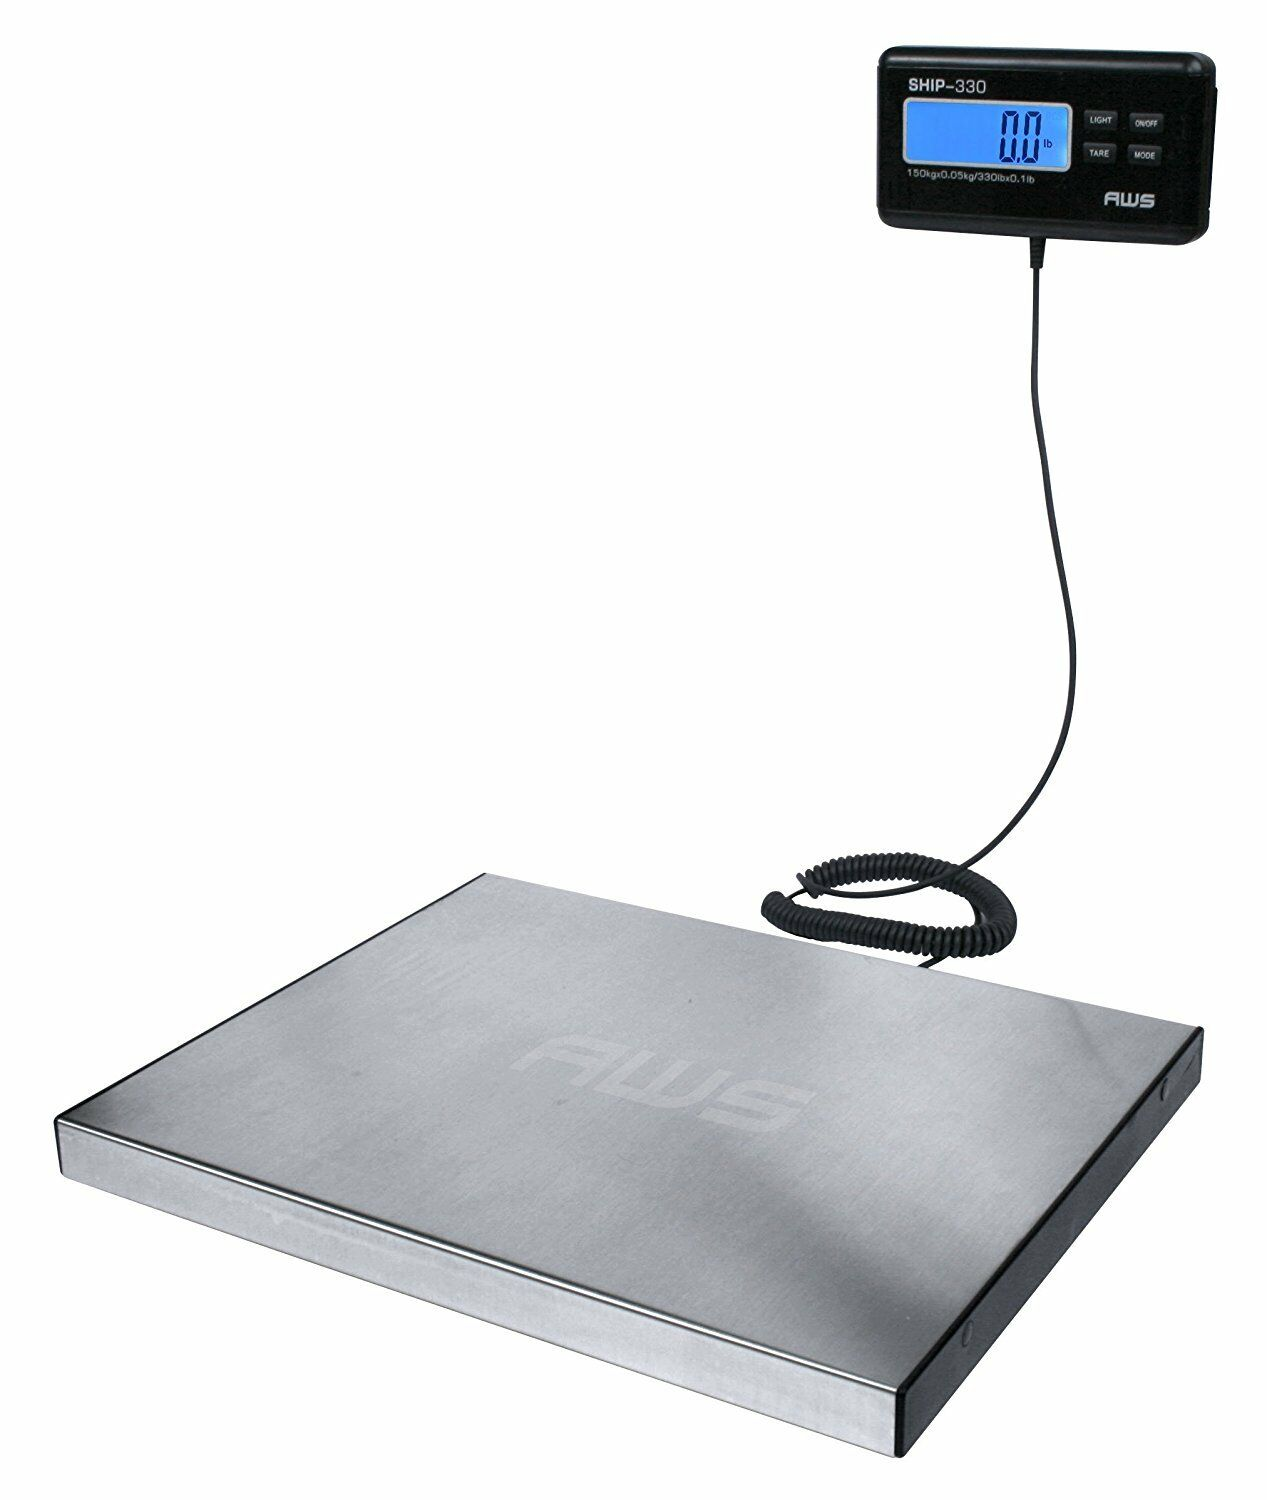 American weightscales amwship 330 American Weigh Scale Ship - 330 numérique de livraison